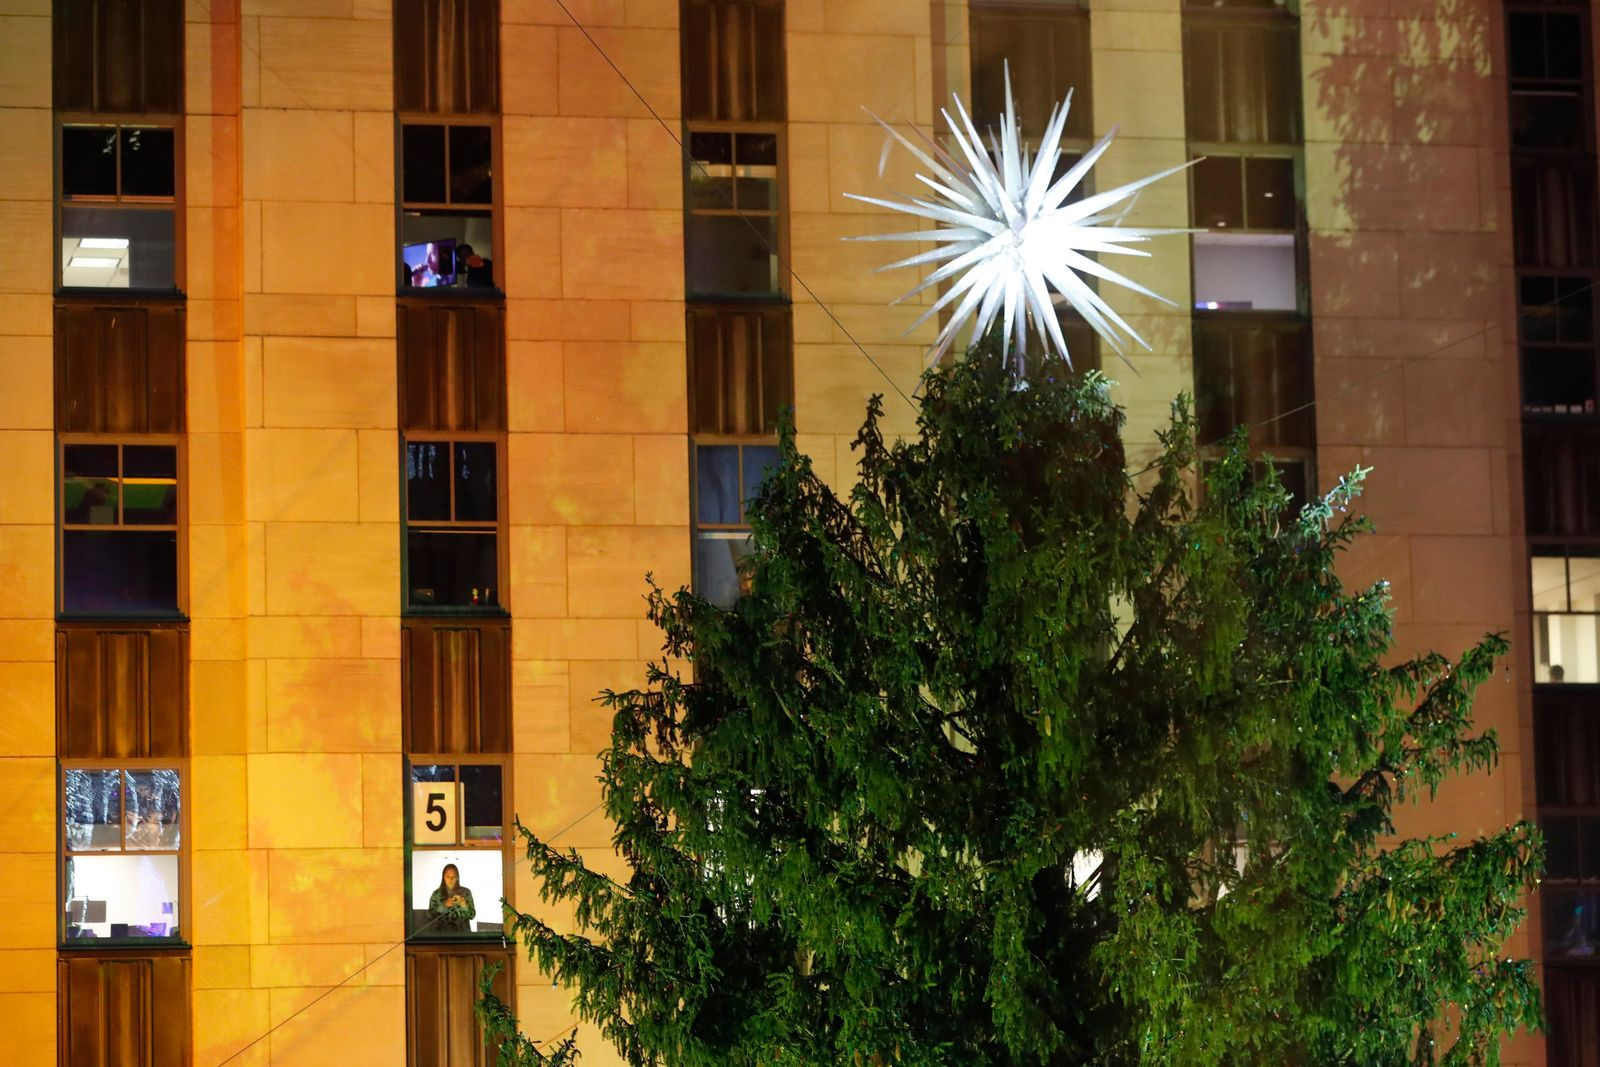 A woman waits in a fifth floor window for the 87th annual Rockefeller Center Christmas Tree lighting to begin as entertainment acts continued, Wednesday, Dec. 4, 2019, in New York. (AP Photo/Kathy Willens)